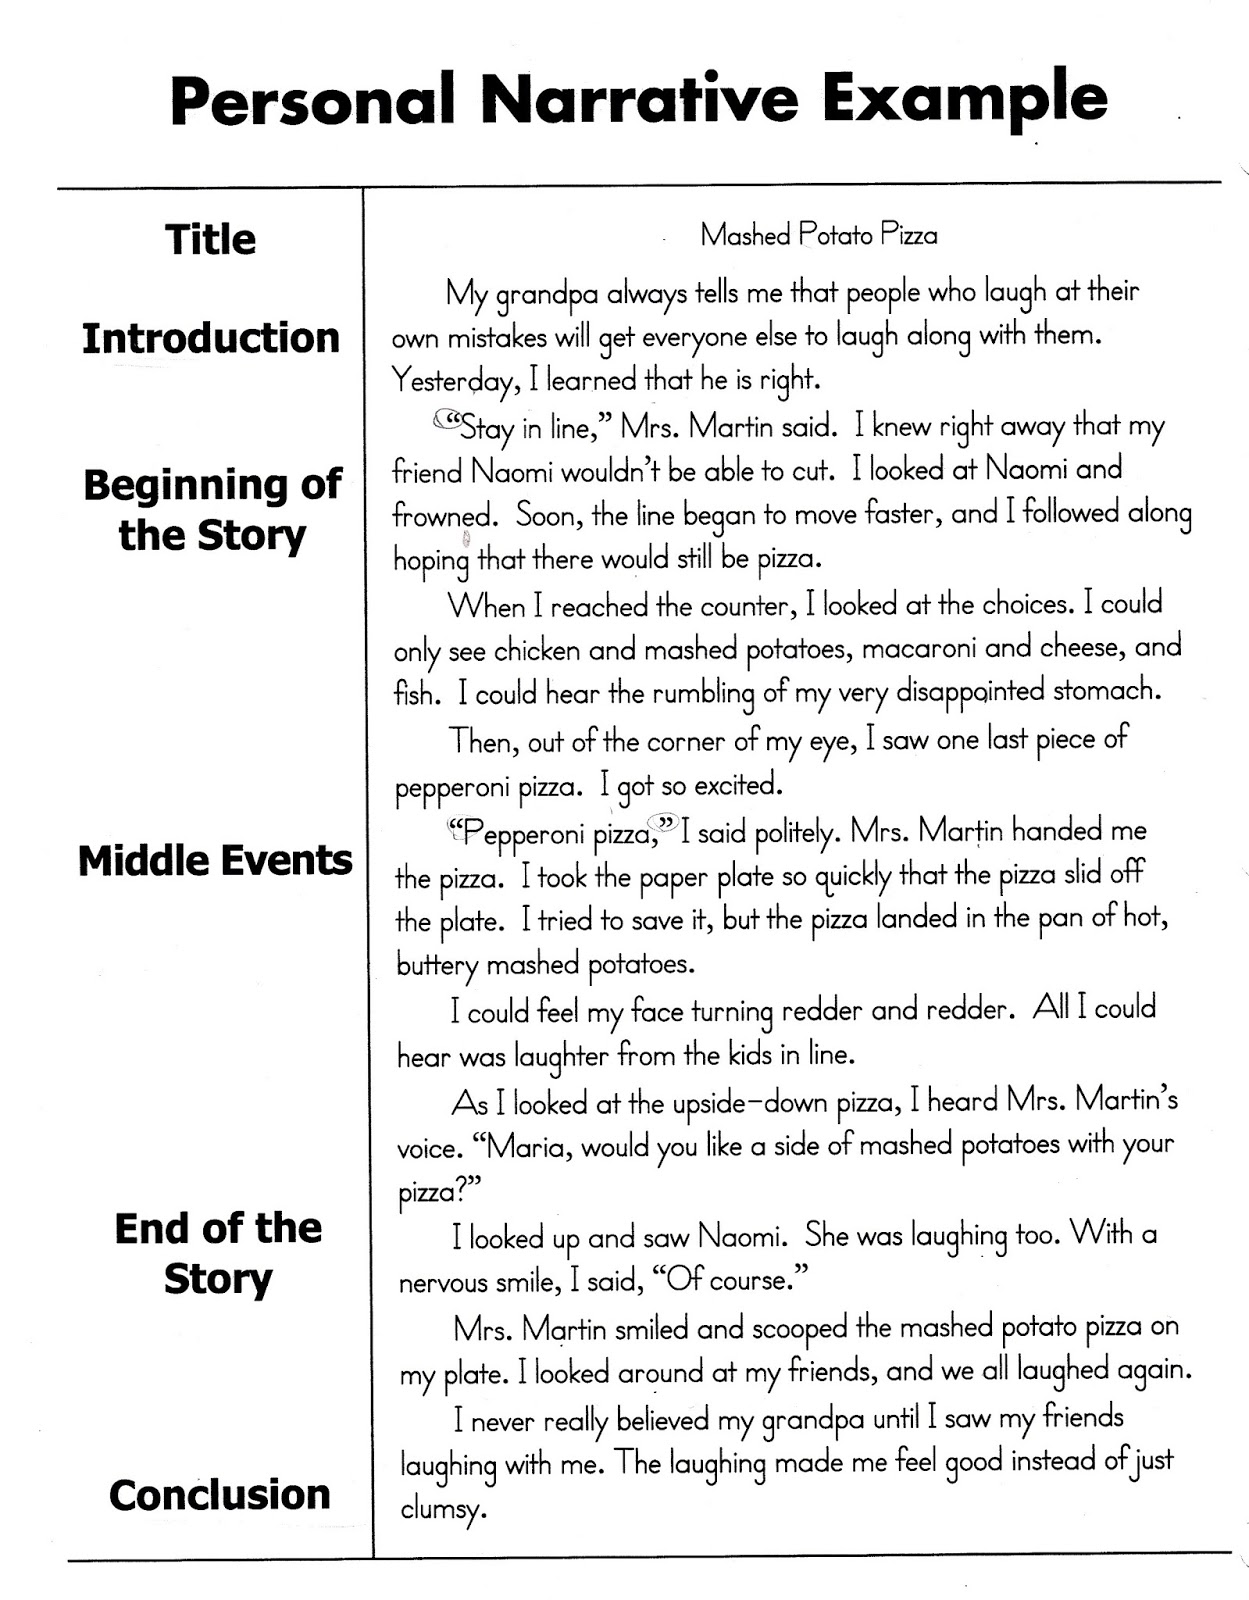 007 Personal20narrative Personal Essay Prompts Beautiful Narrative Writing 3rd Grade Ks1 Ks2 Full